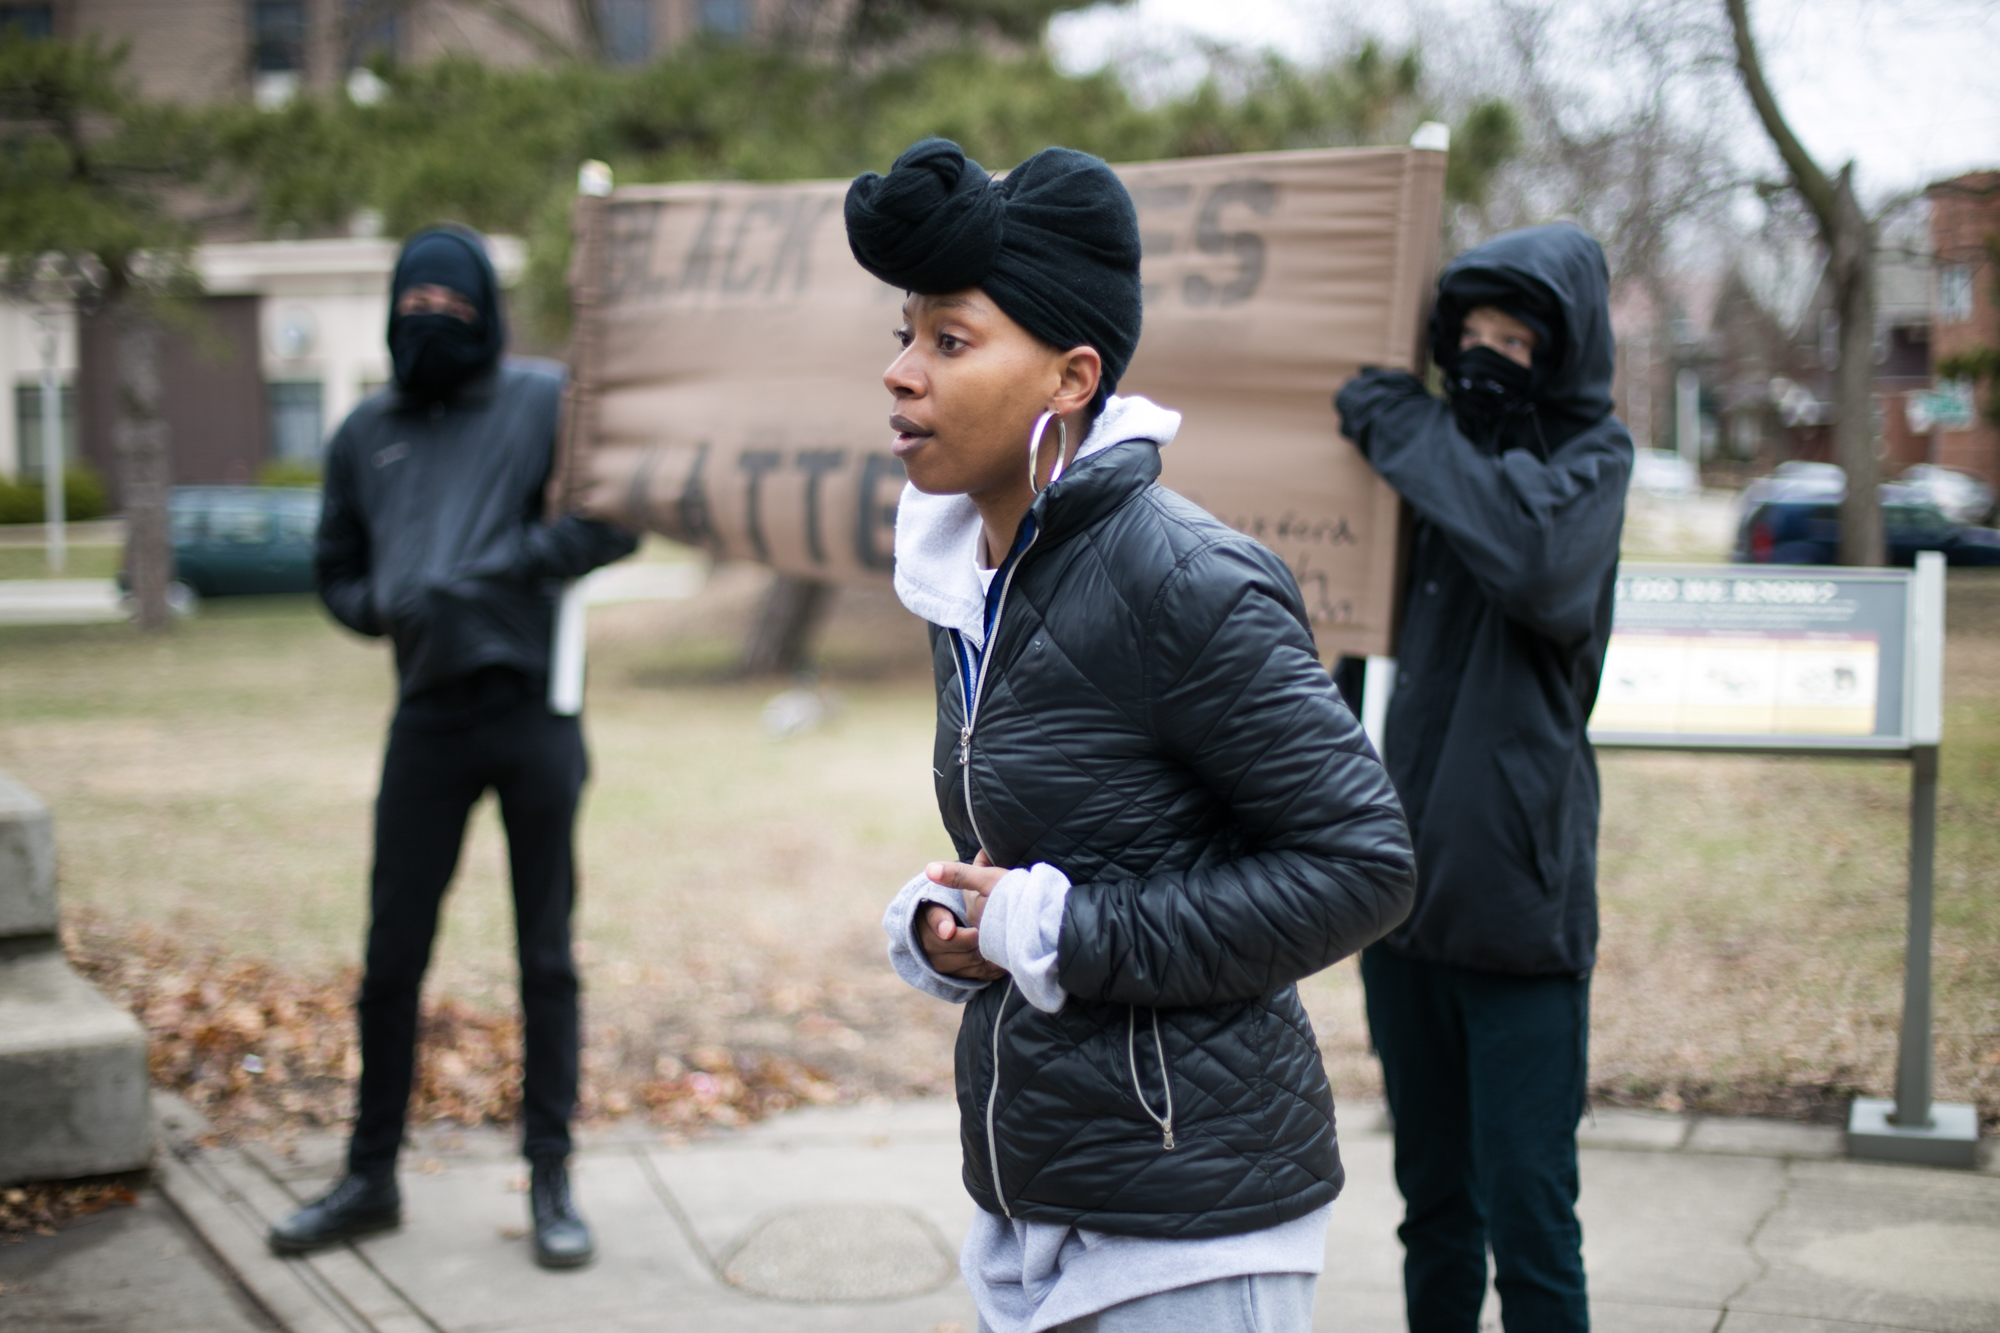 Starr Davison of Rockford, one of the event organizers, speaks at a memorial vigil for Stephon Clark and Jovan Blake on Saturday, April 14, 2018, at Beattie Park in Rockford. Clark was a Sacramento father fatally shot during an incident with police. Blake was shot and killed during an incident with two Rockford Metro Enforcement officers in 2016. [SCOTT P. YATES/RRSTAR.COM STAFF]